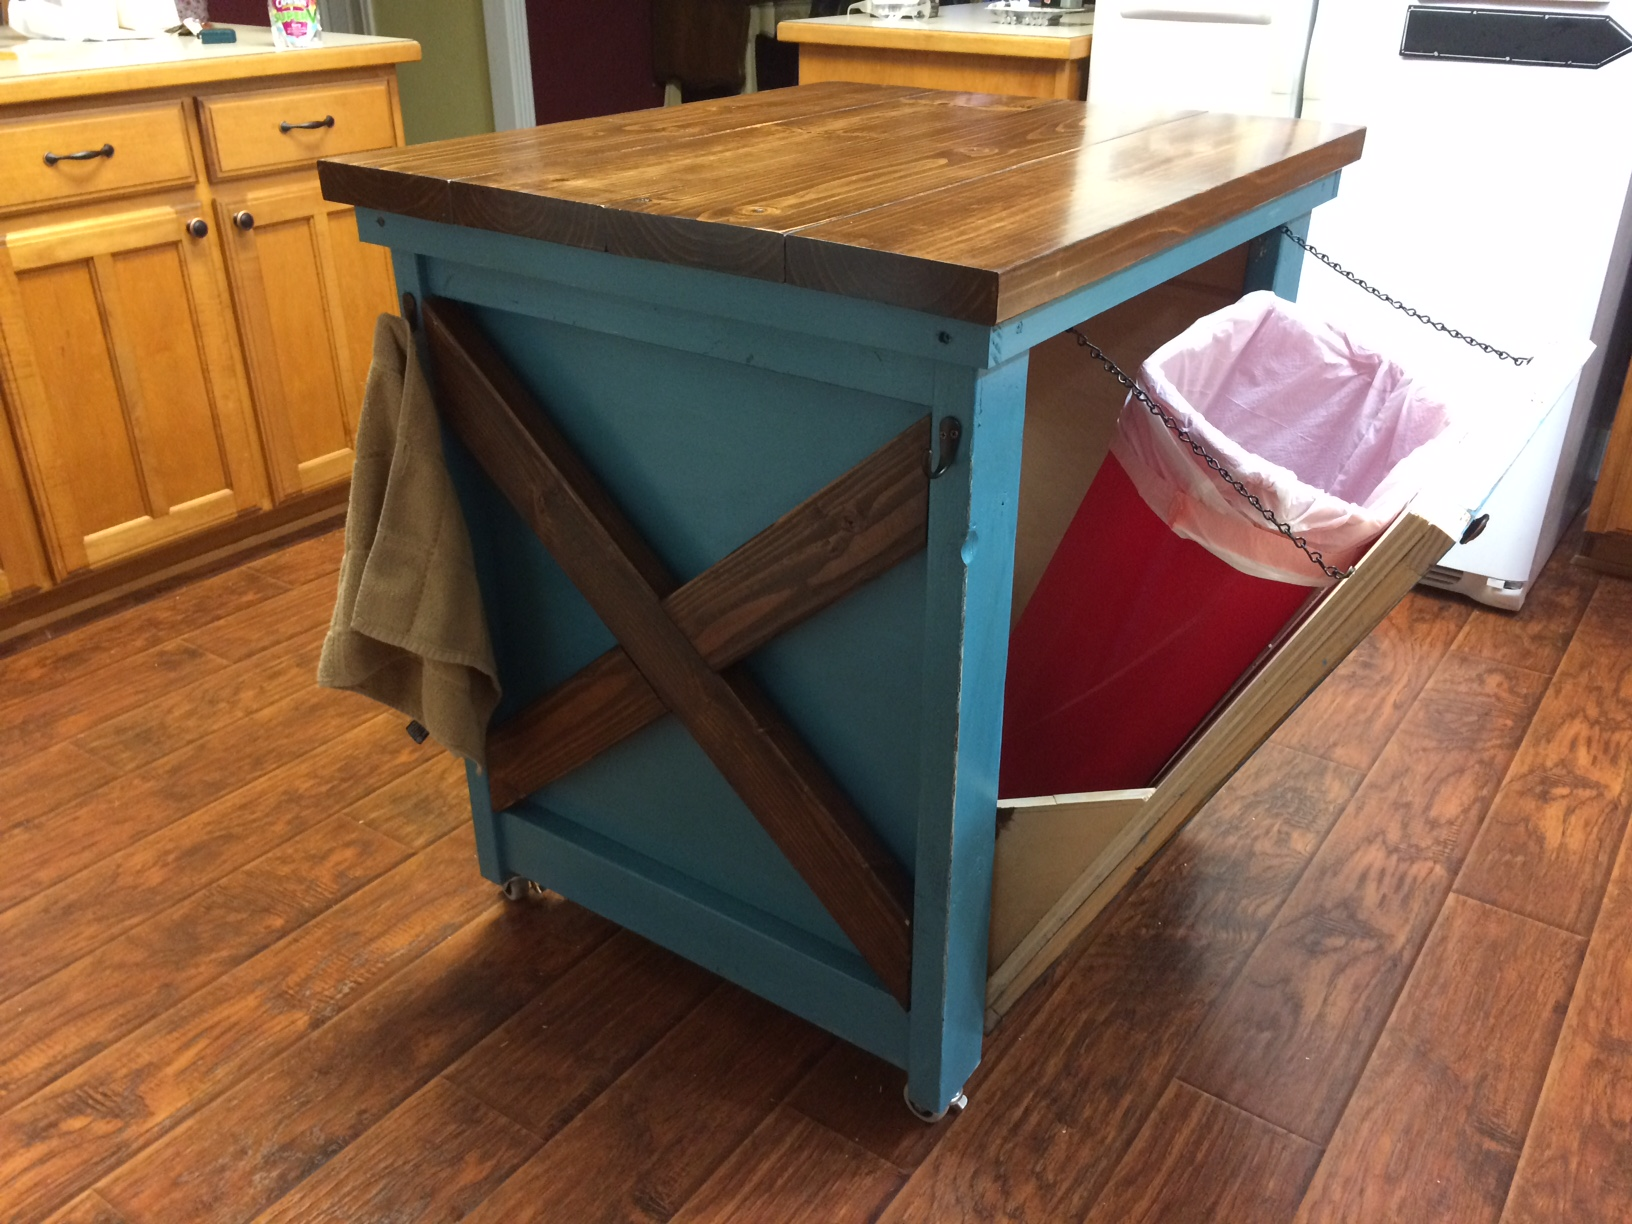 Ana White Kitchen Island With Trash Bin DIY Projects - Kitchen island with garbage bin